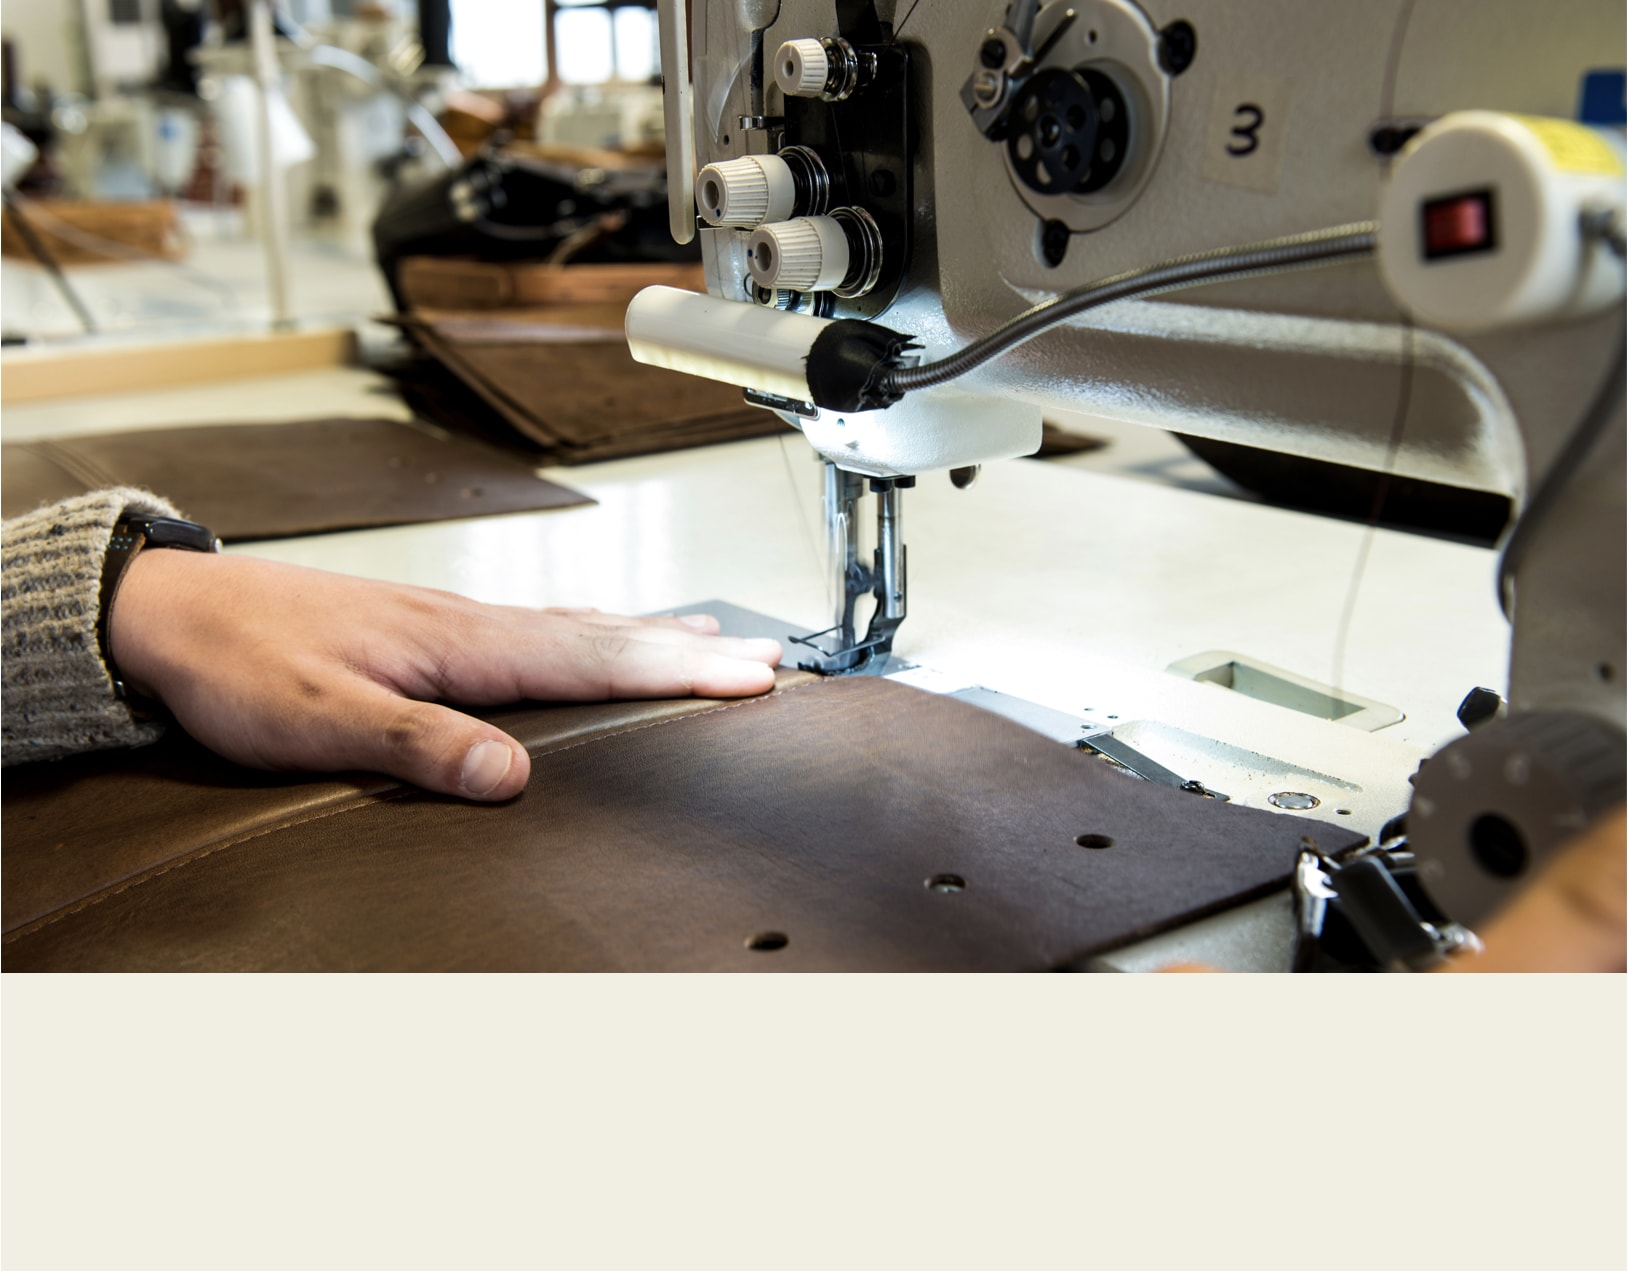 Maker who sews using a sewing machine on dark brown leather